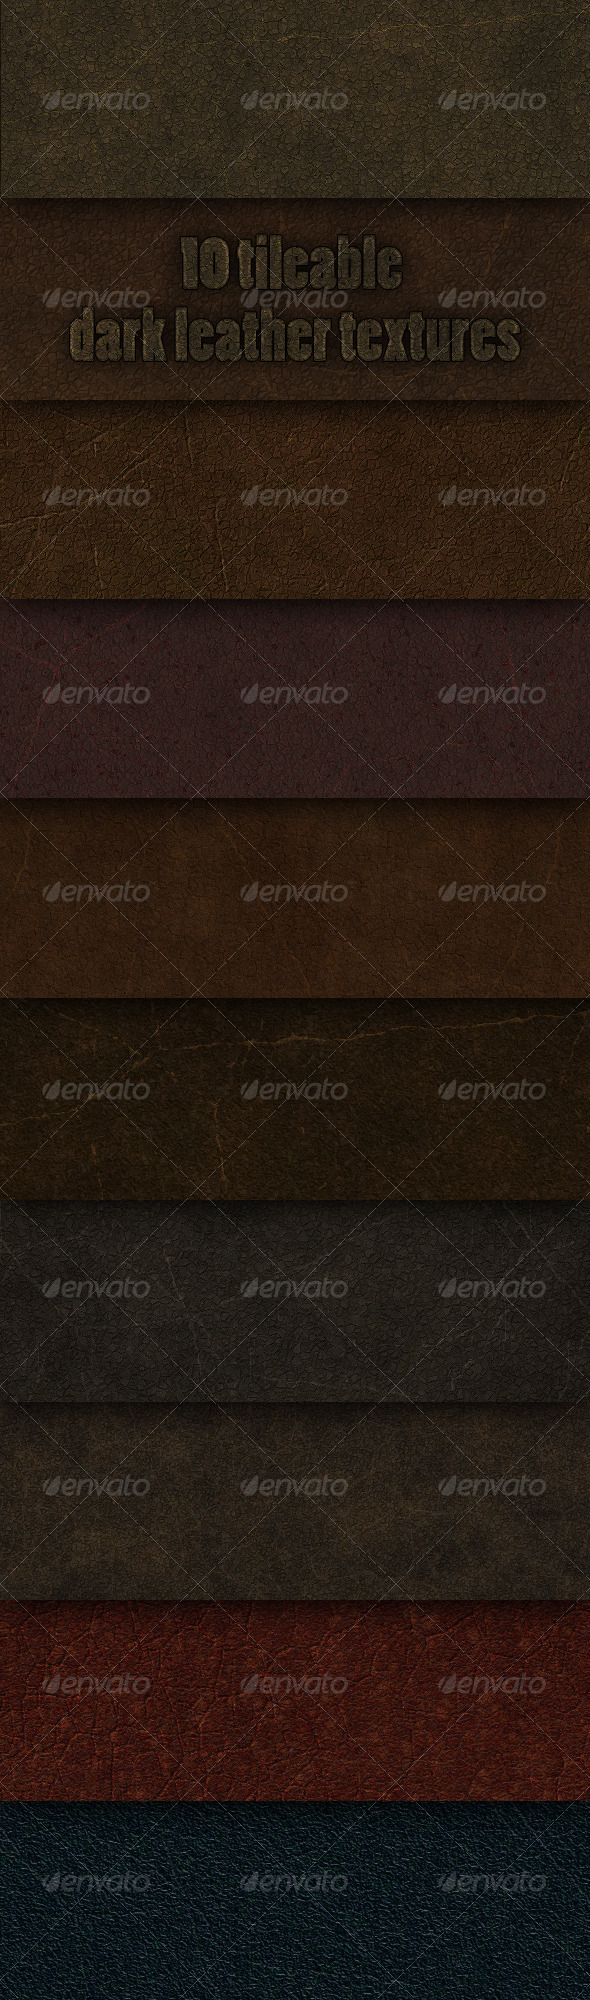 GraphicRiver 10 tileable dark leather textures 147033